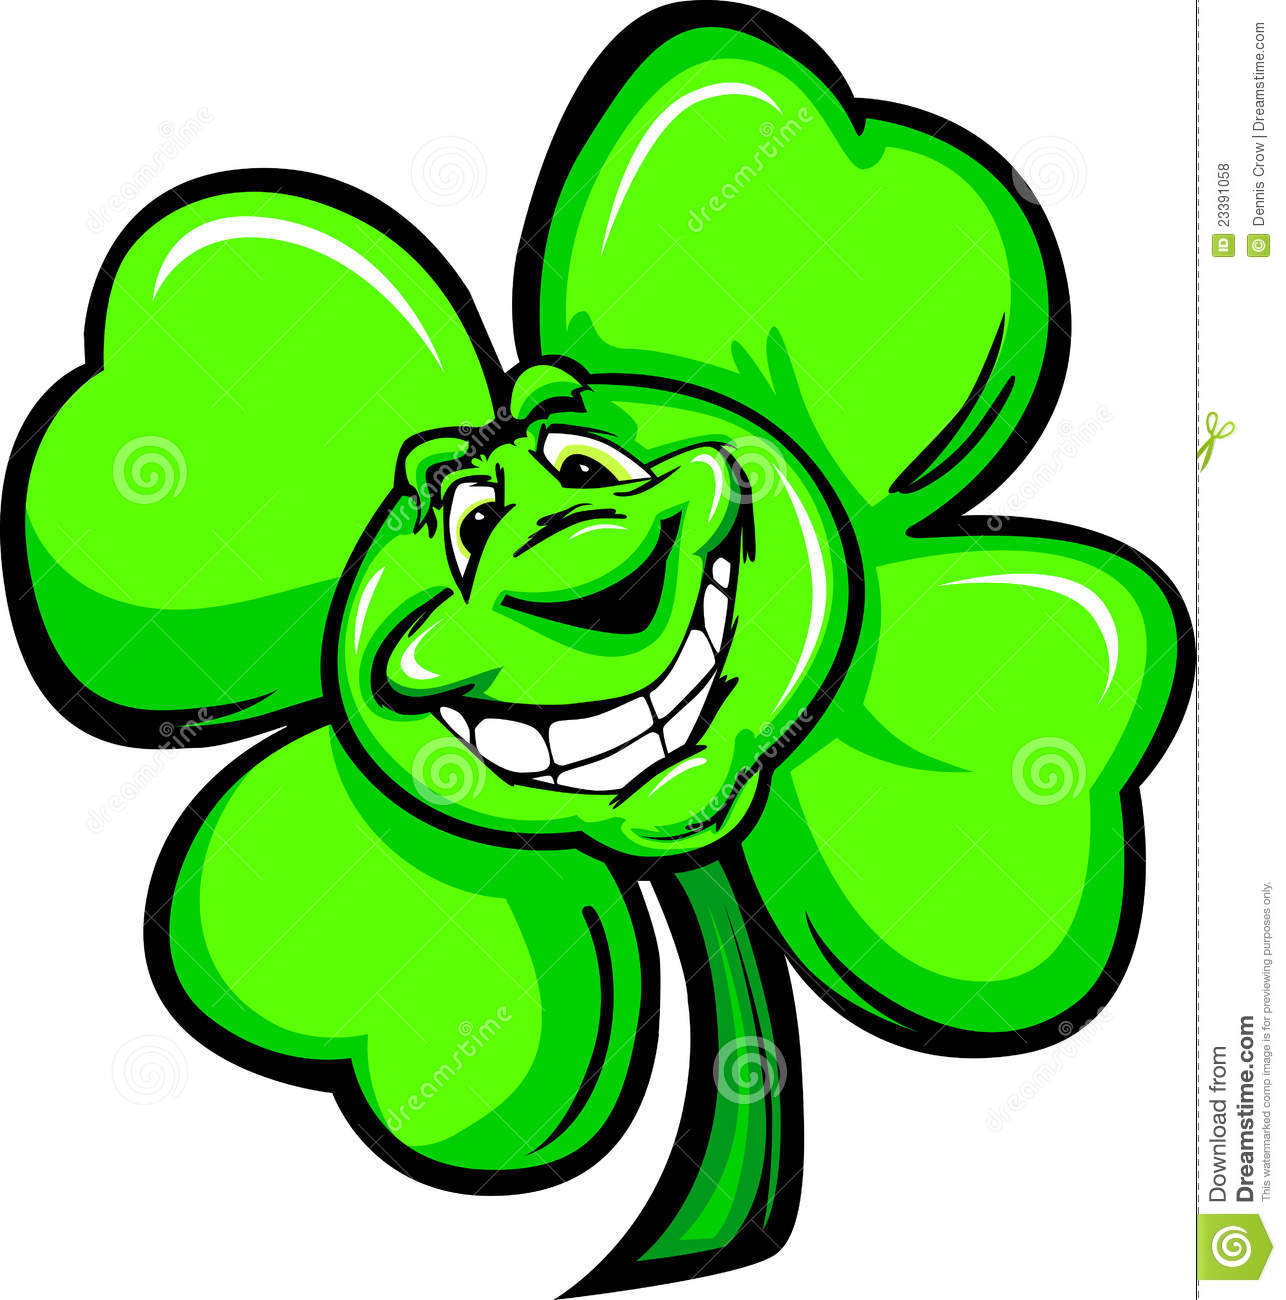 happy four leaf clover cartoon with a big smile royalty free stock